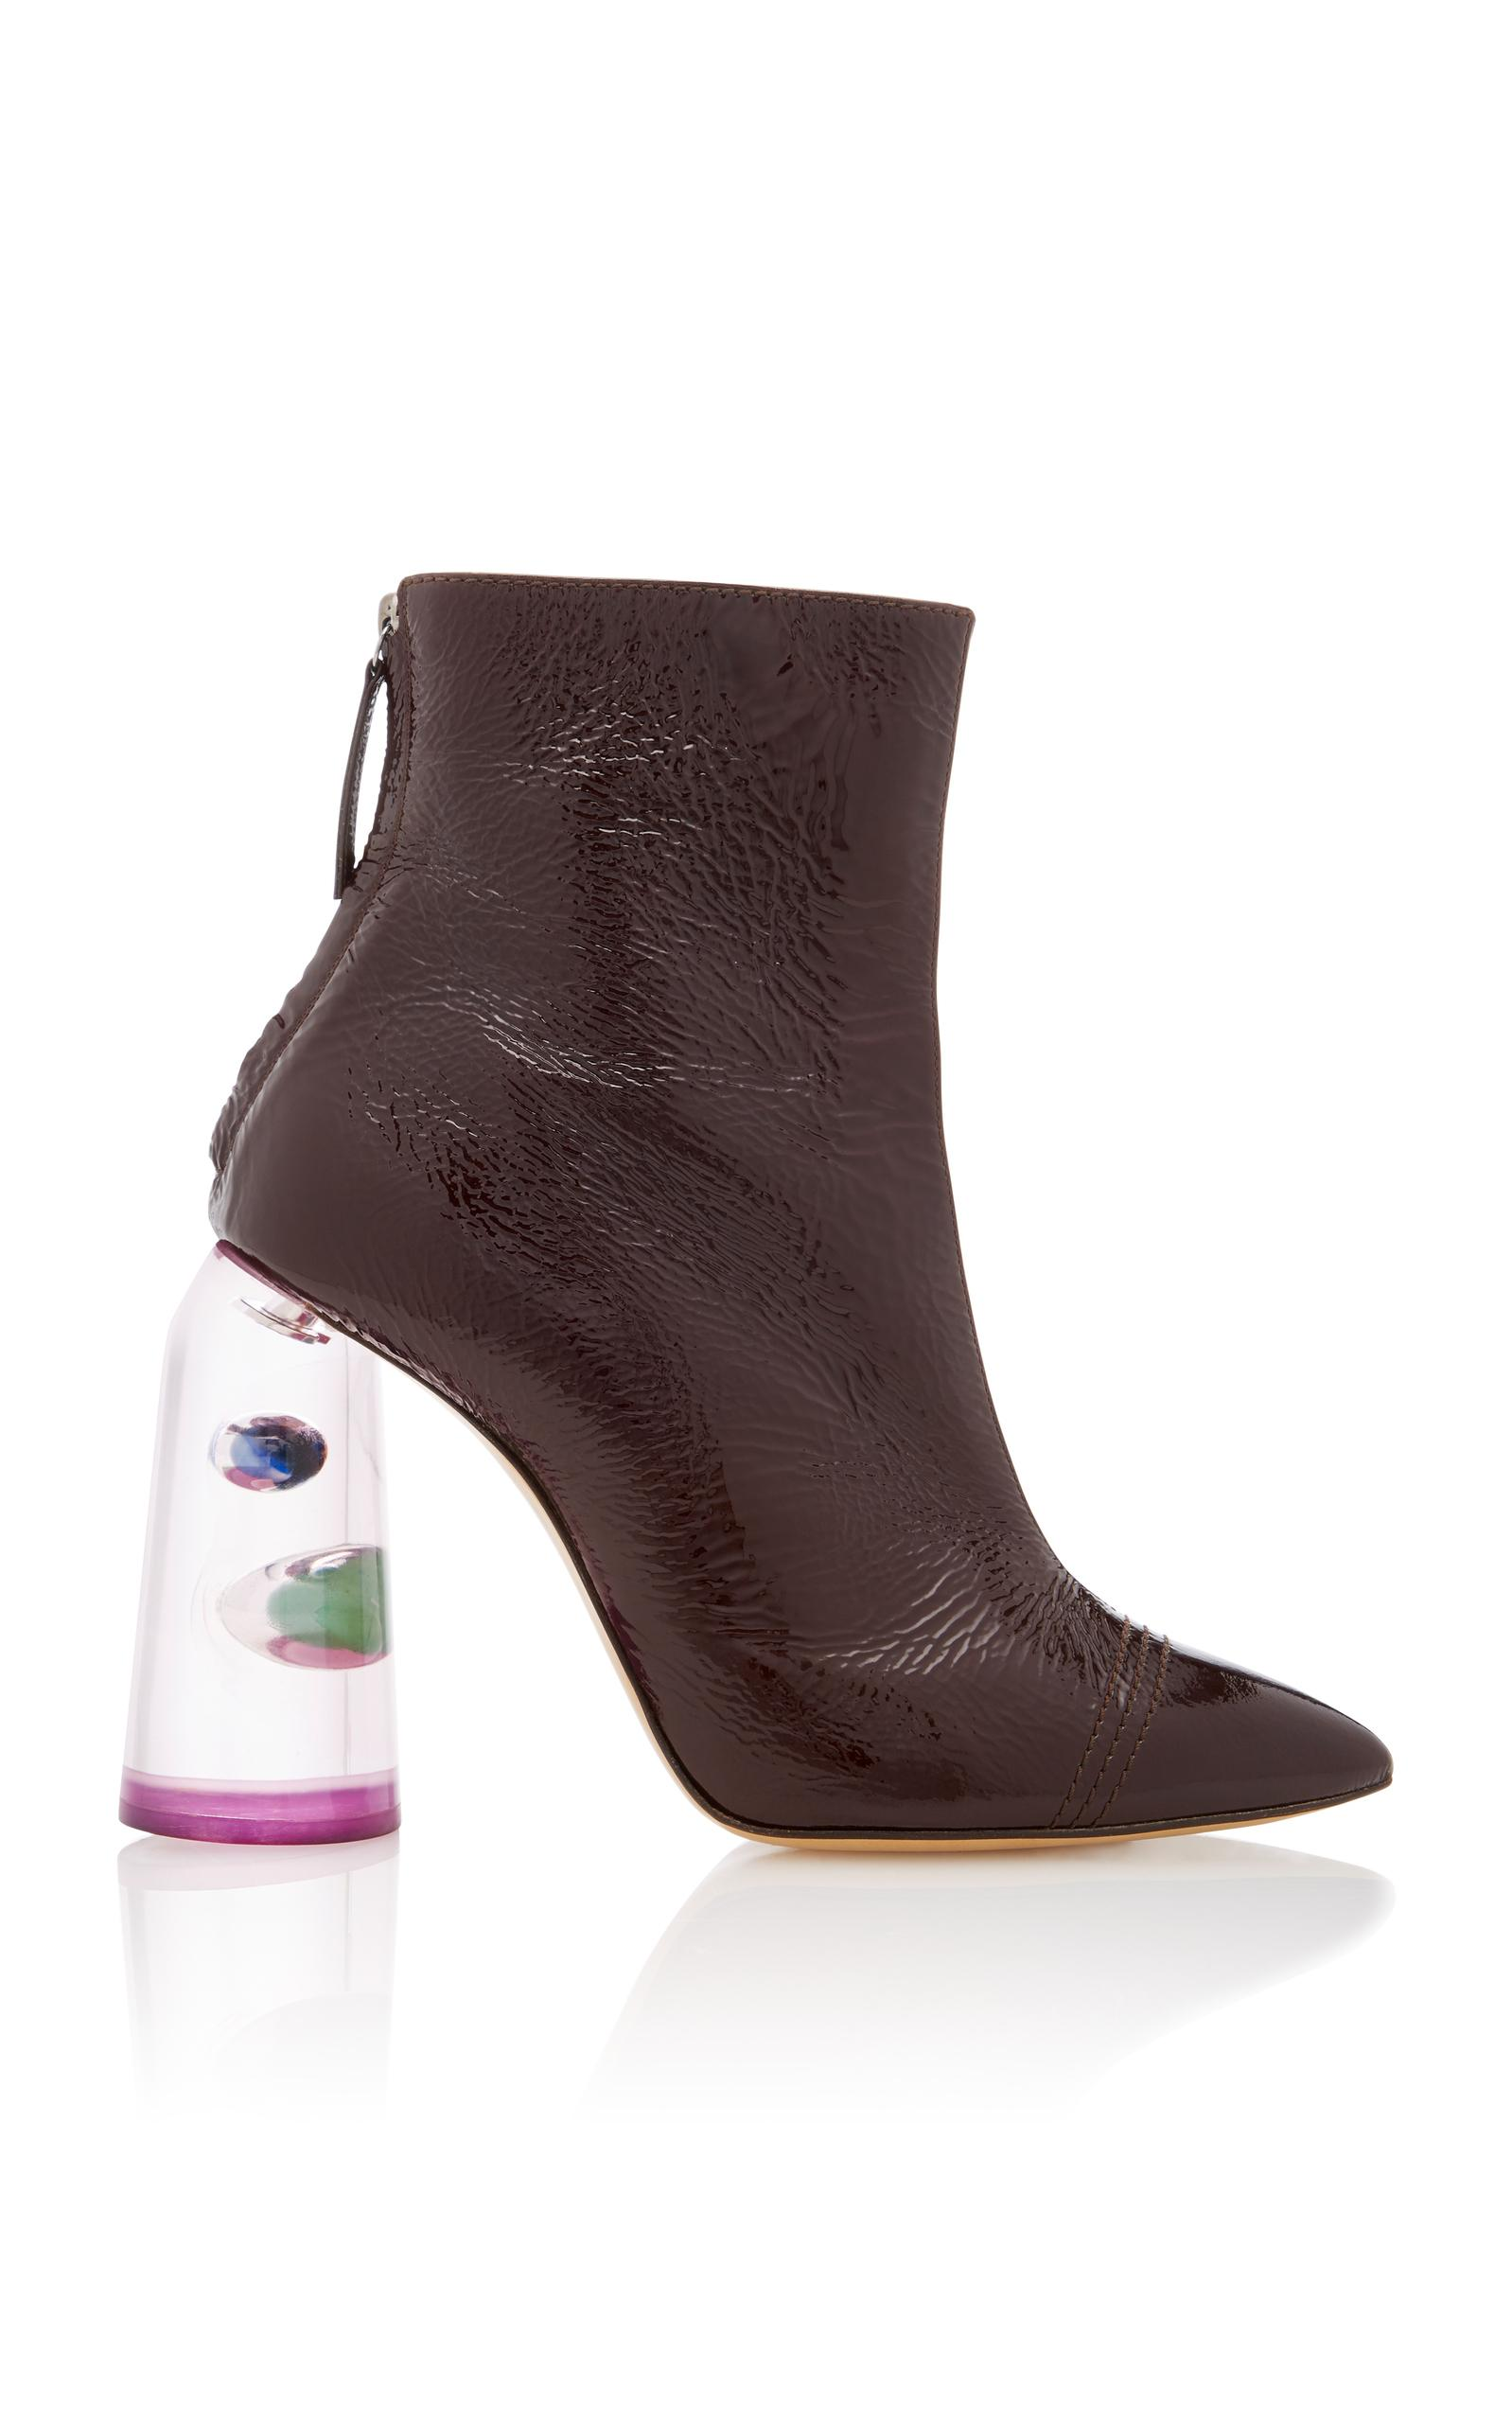 6e85678d5 Ellery Patent Leather And Marbled Perspex Ankle Boots In Burgundy ...